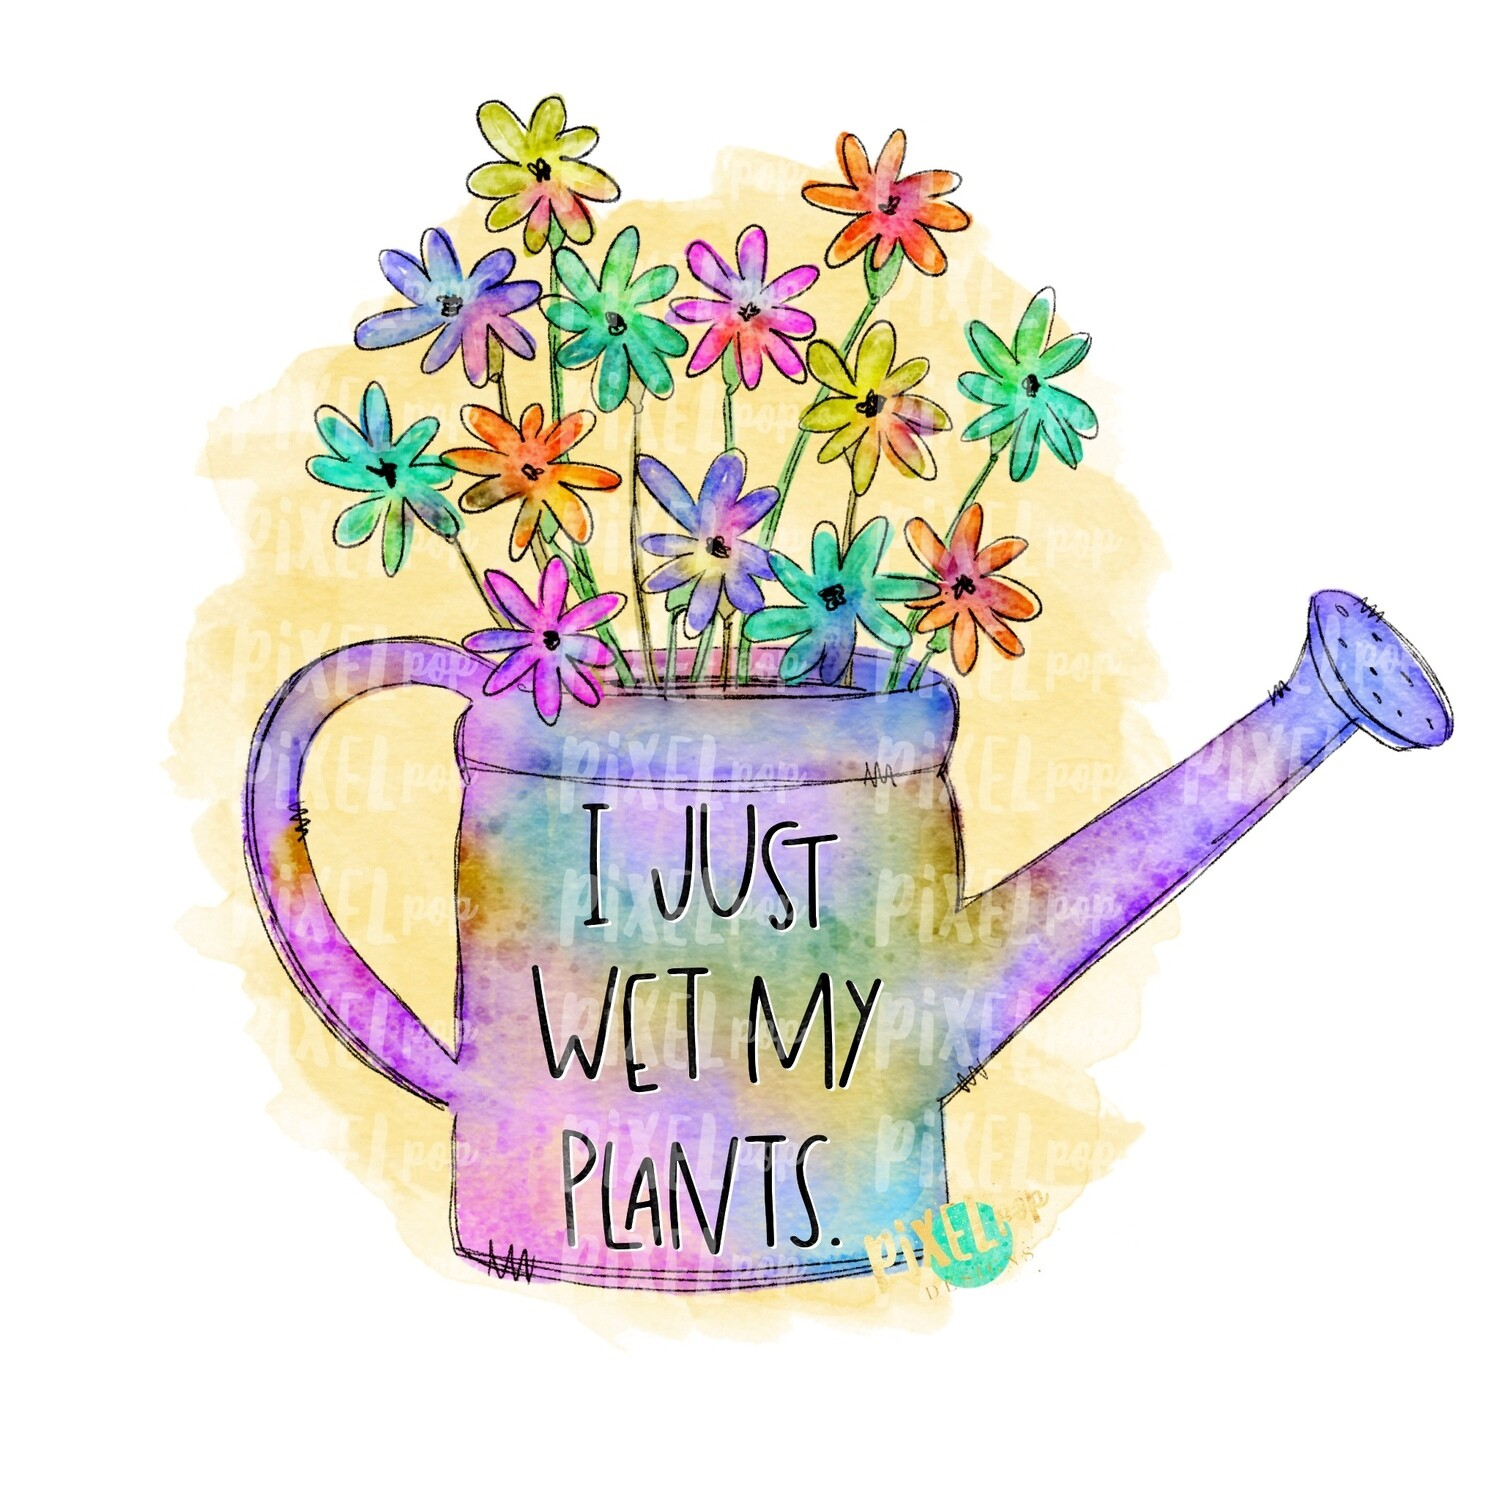 I Just Wet My Plants Gardening Can Watercolor Sublimation PNG | Spring PNG | Design | Heat Transfer PNG | Digital Download | Printable Art